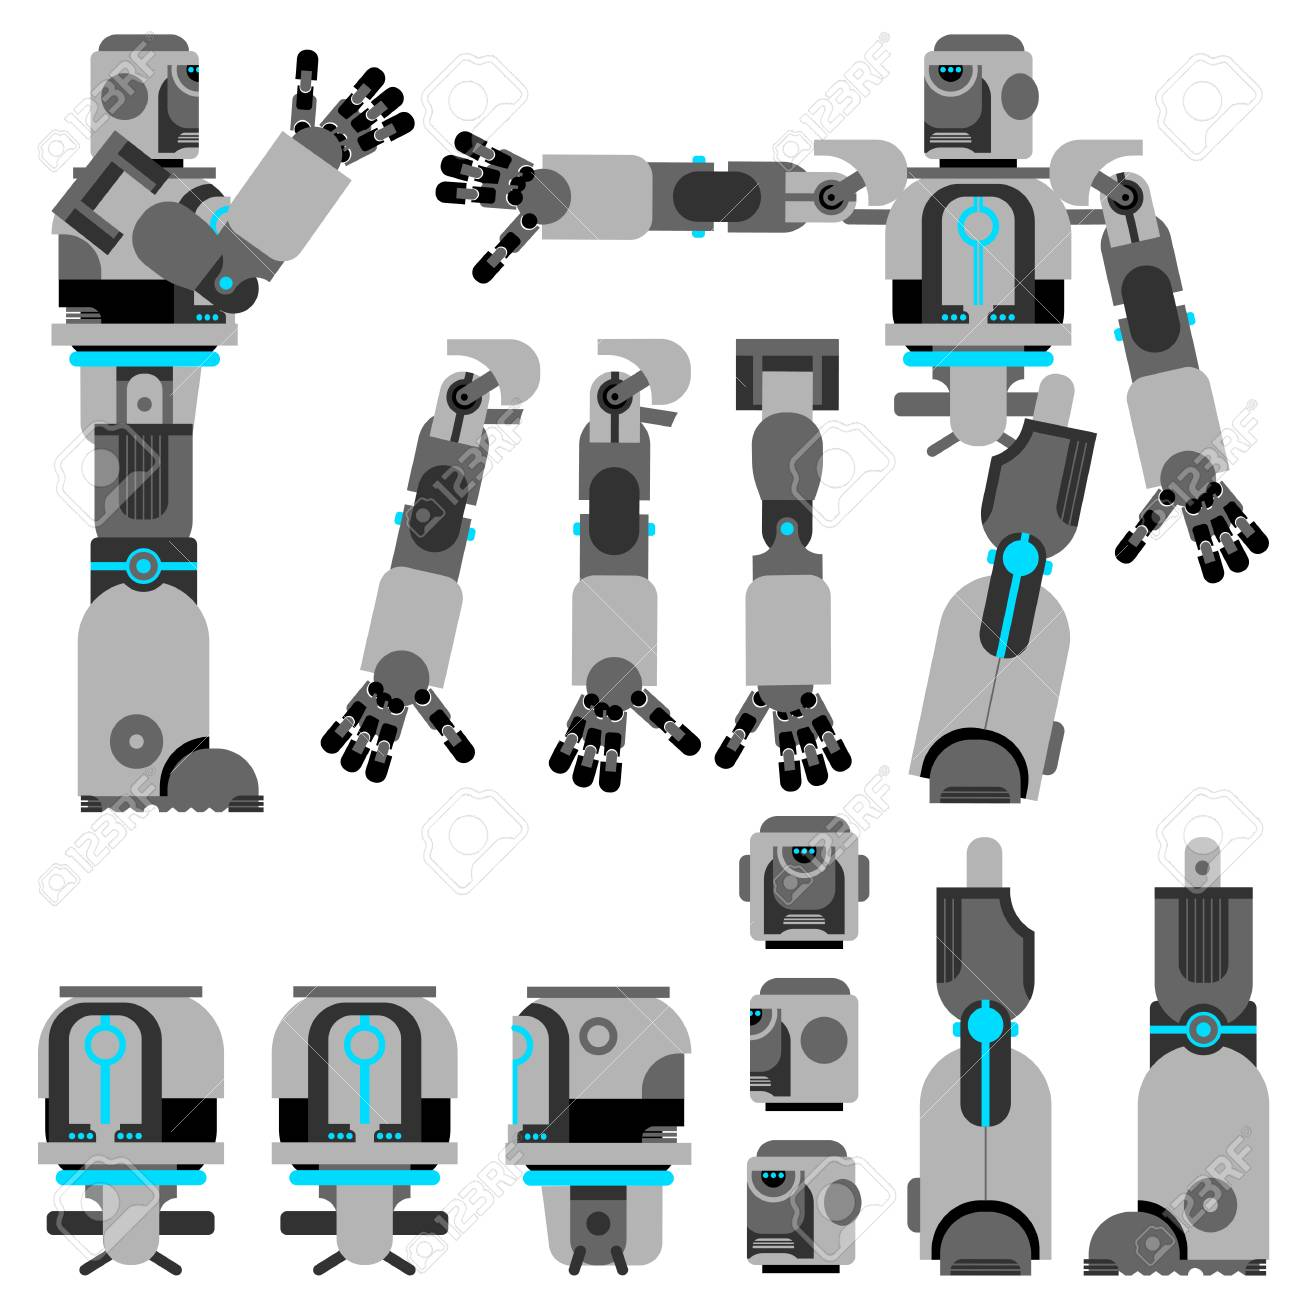 Cartoon gray robot with additional parts which are turned in